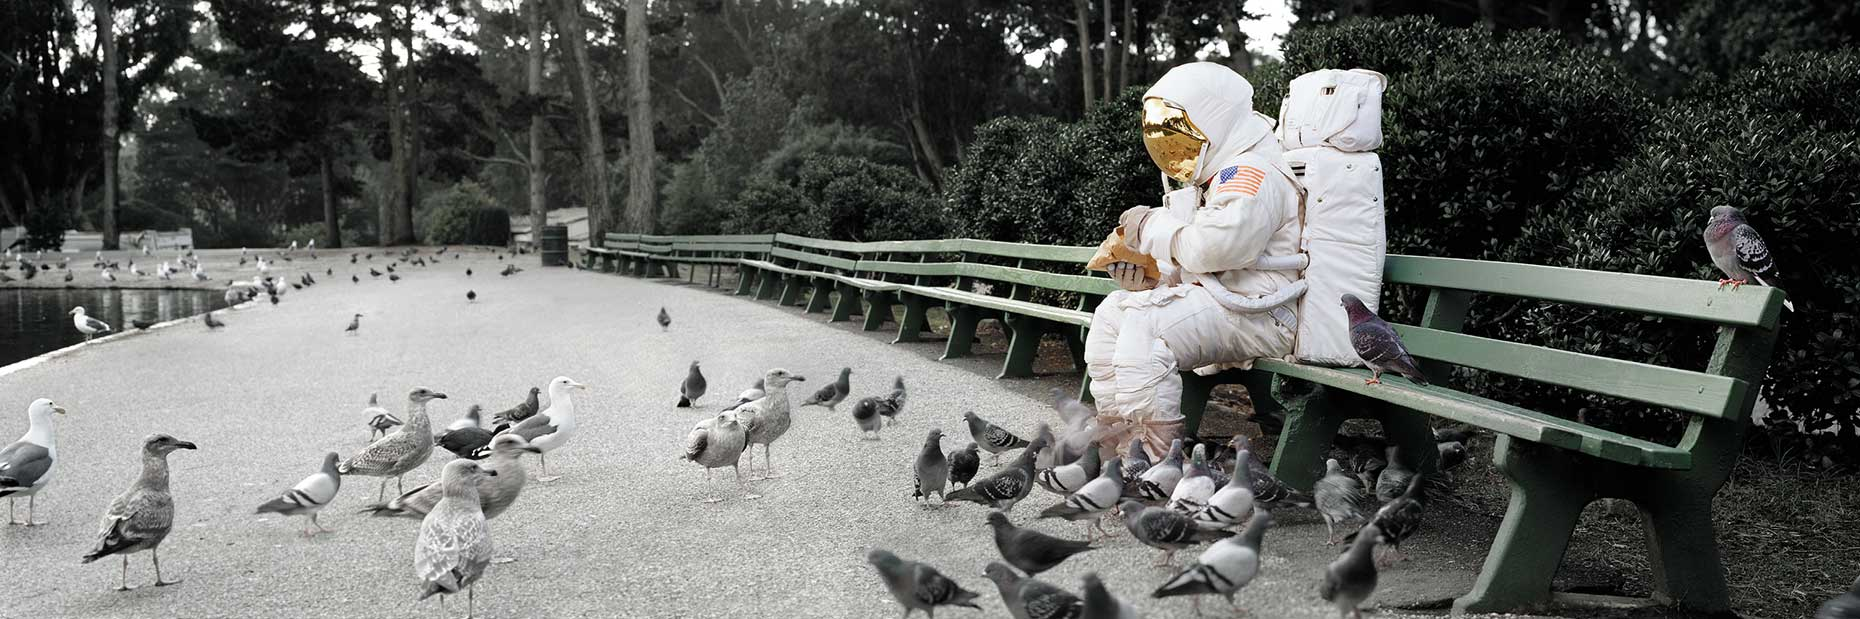 Astronaut_pigeons_RESIZED_FOR_WEB